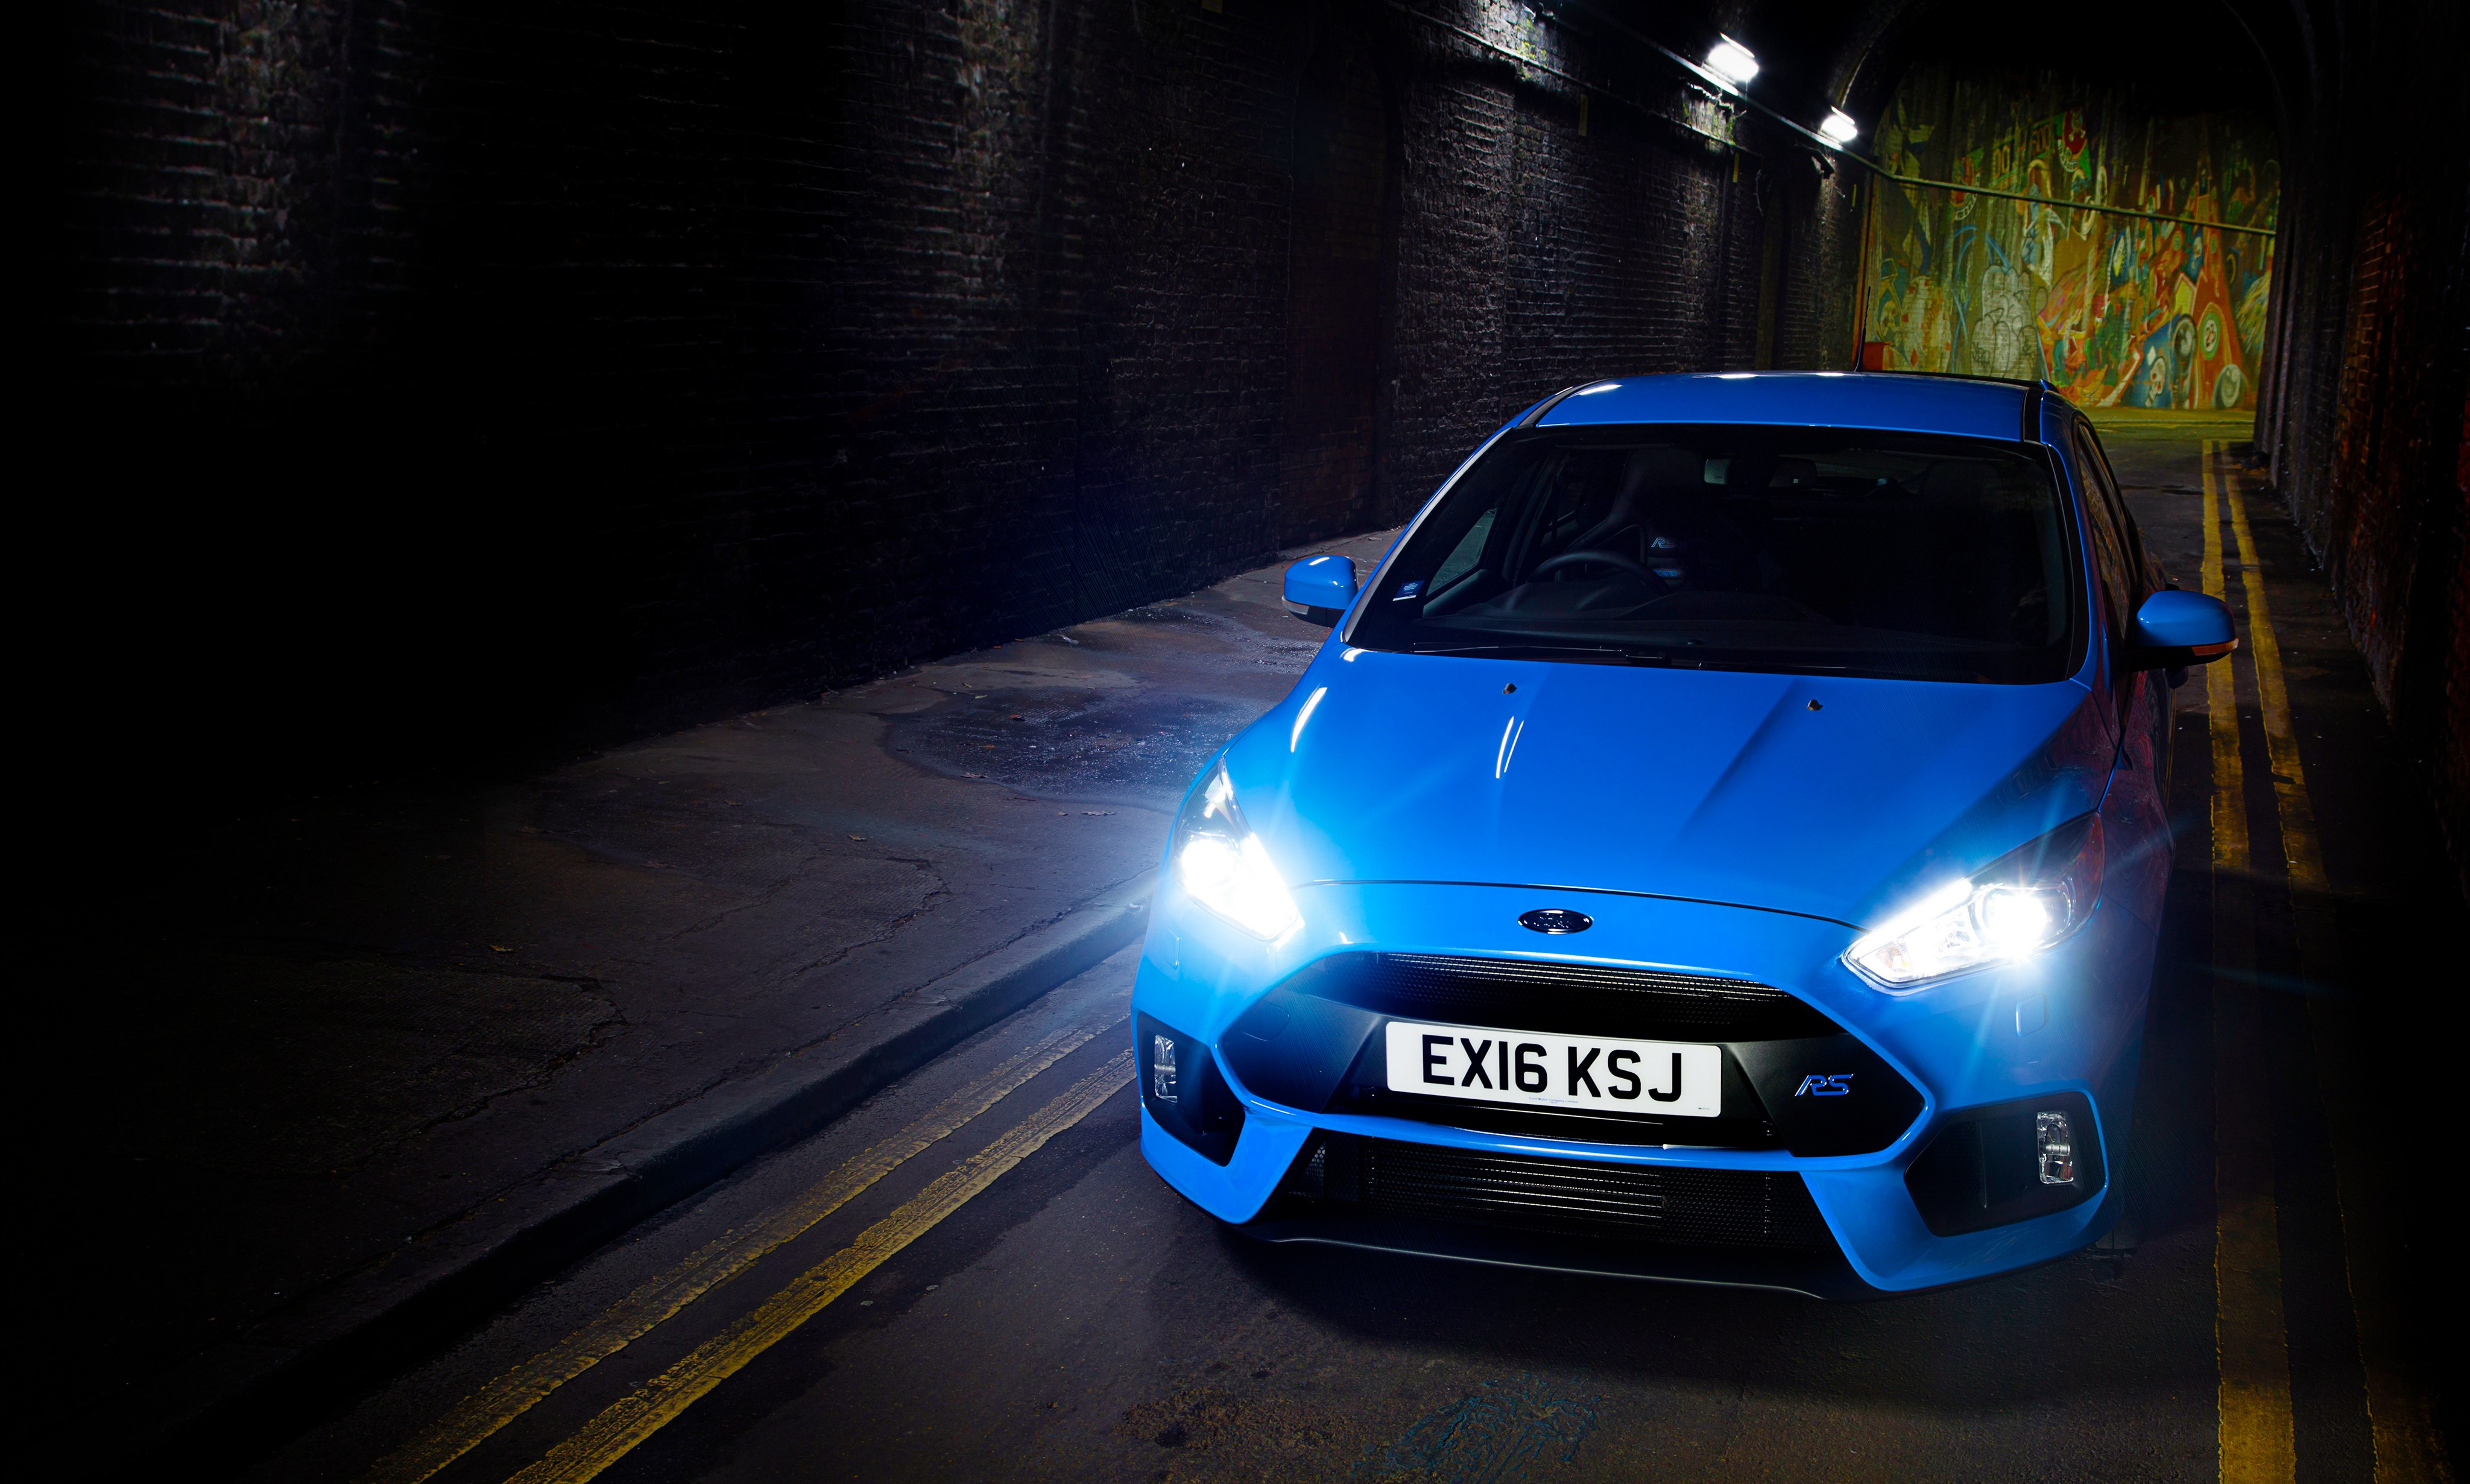 Popular Wallpaper Night Car - ford-focus-rs-4096x2461-hatchback-blue-night-10174  Graphic.jpeg